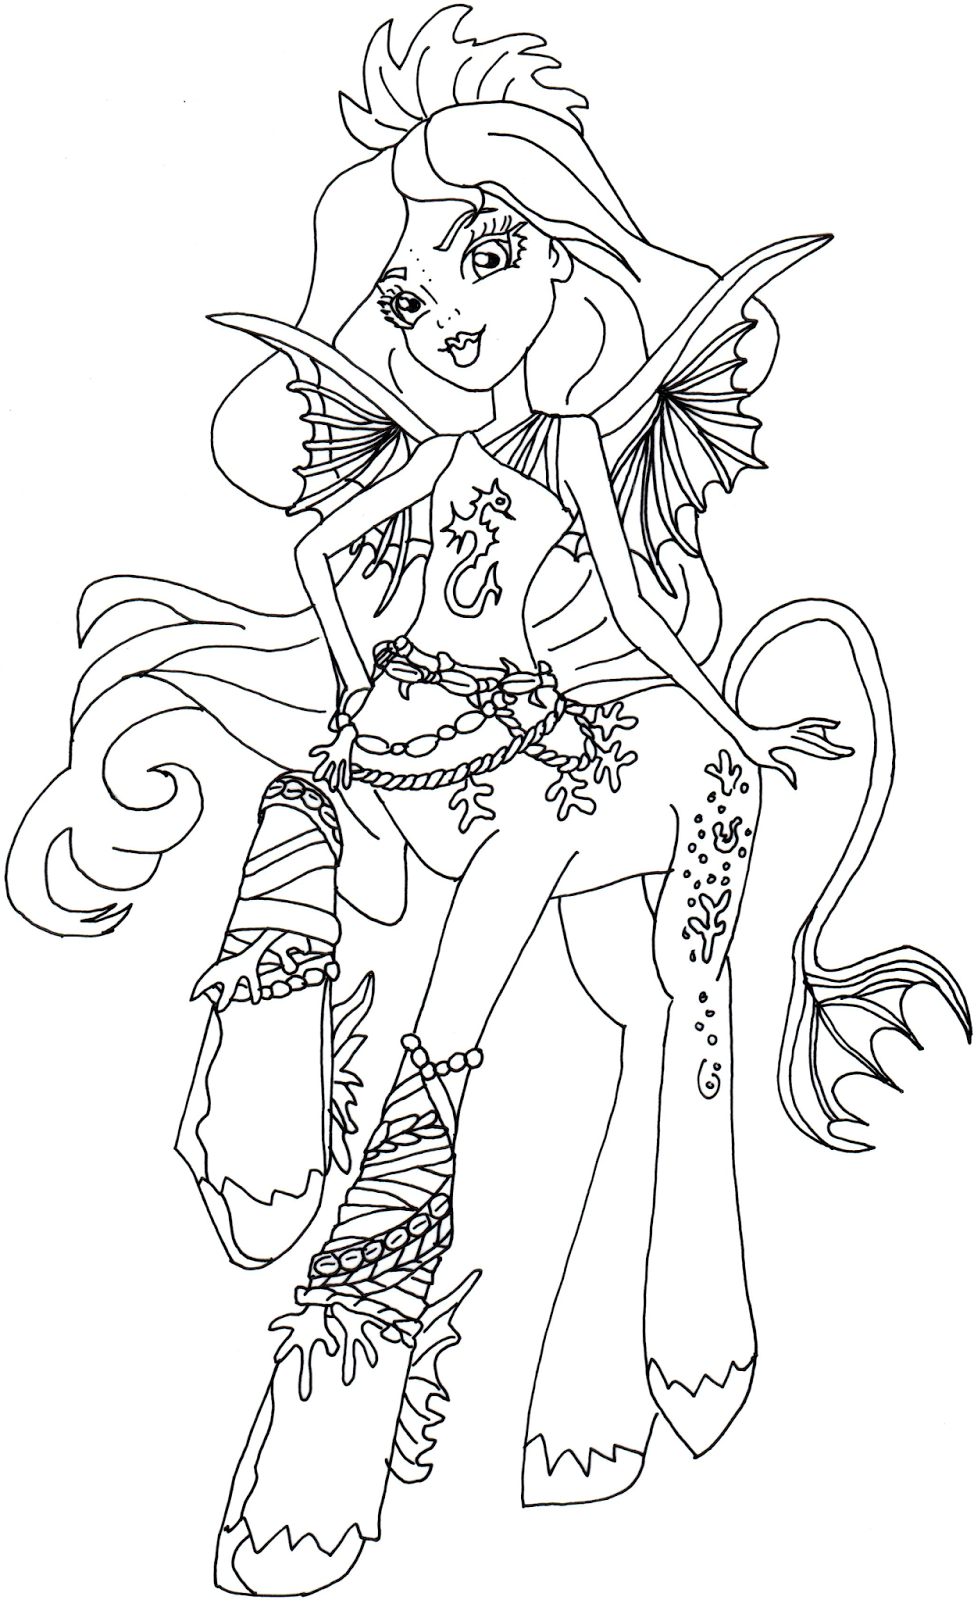 Free Printable Monster High Coloring Pages: Bay Tidechaser